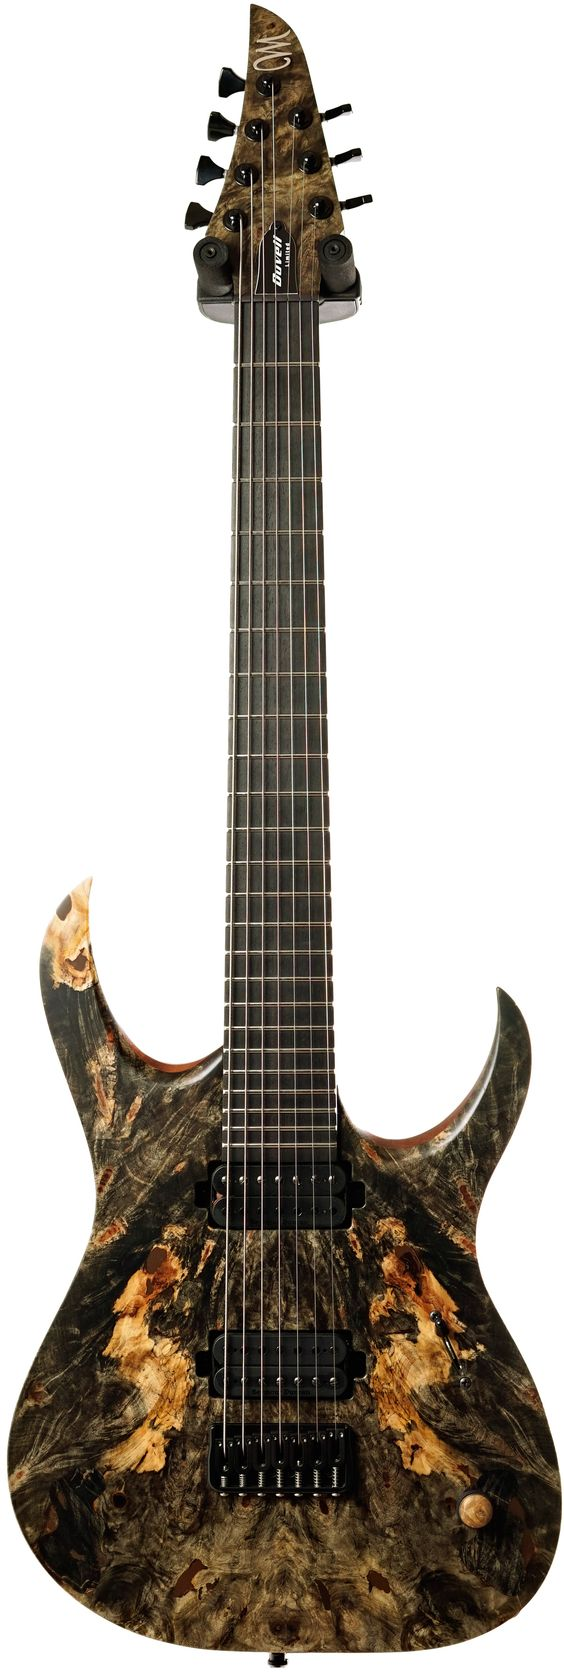 mayones duvell elite 7 buckeye burl master builder collection 2016, Fish Finder